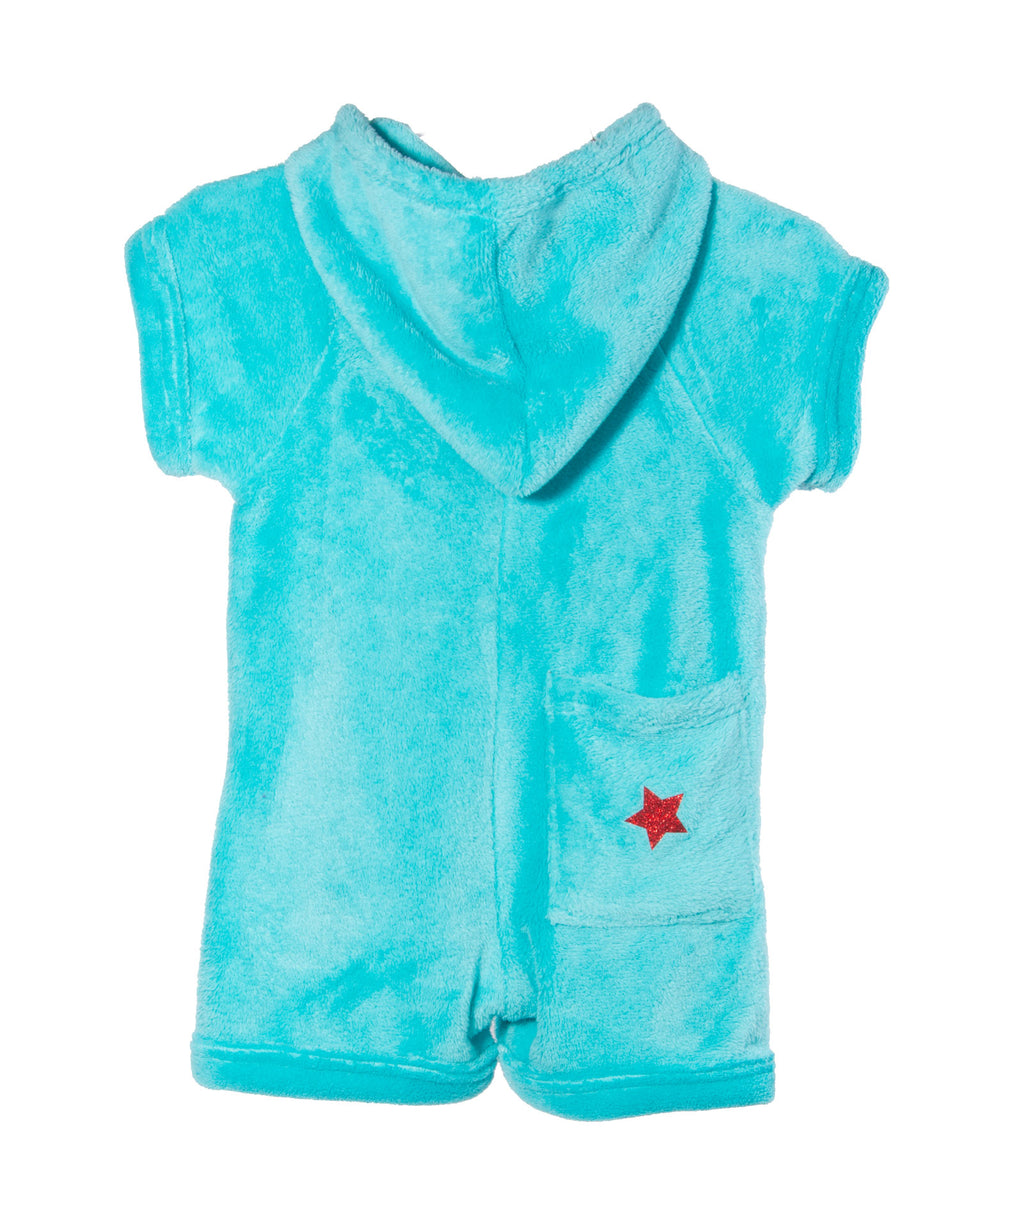 Made with Love and Kisses Star Turquoise Romper